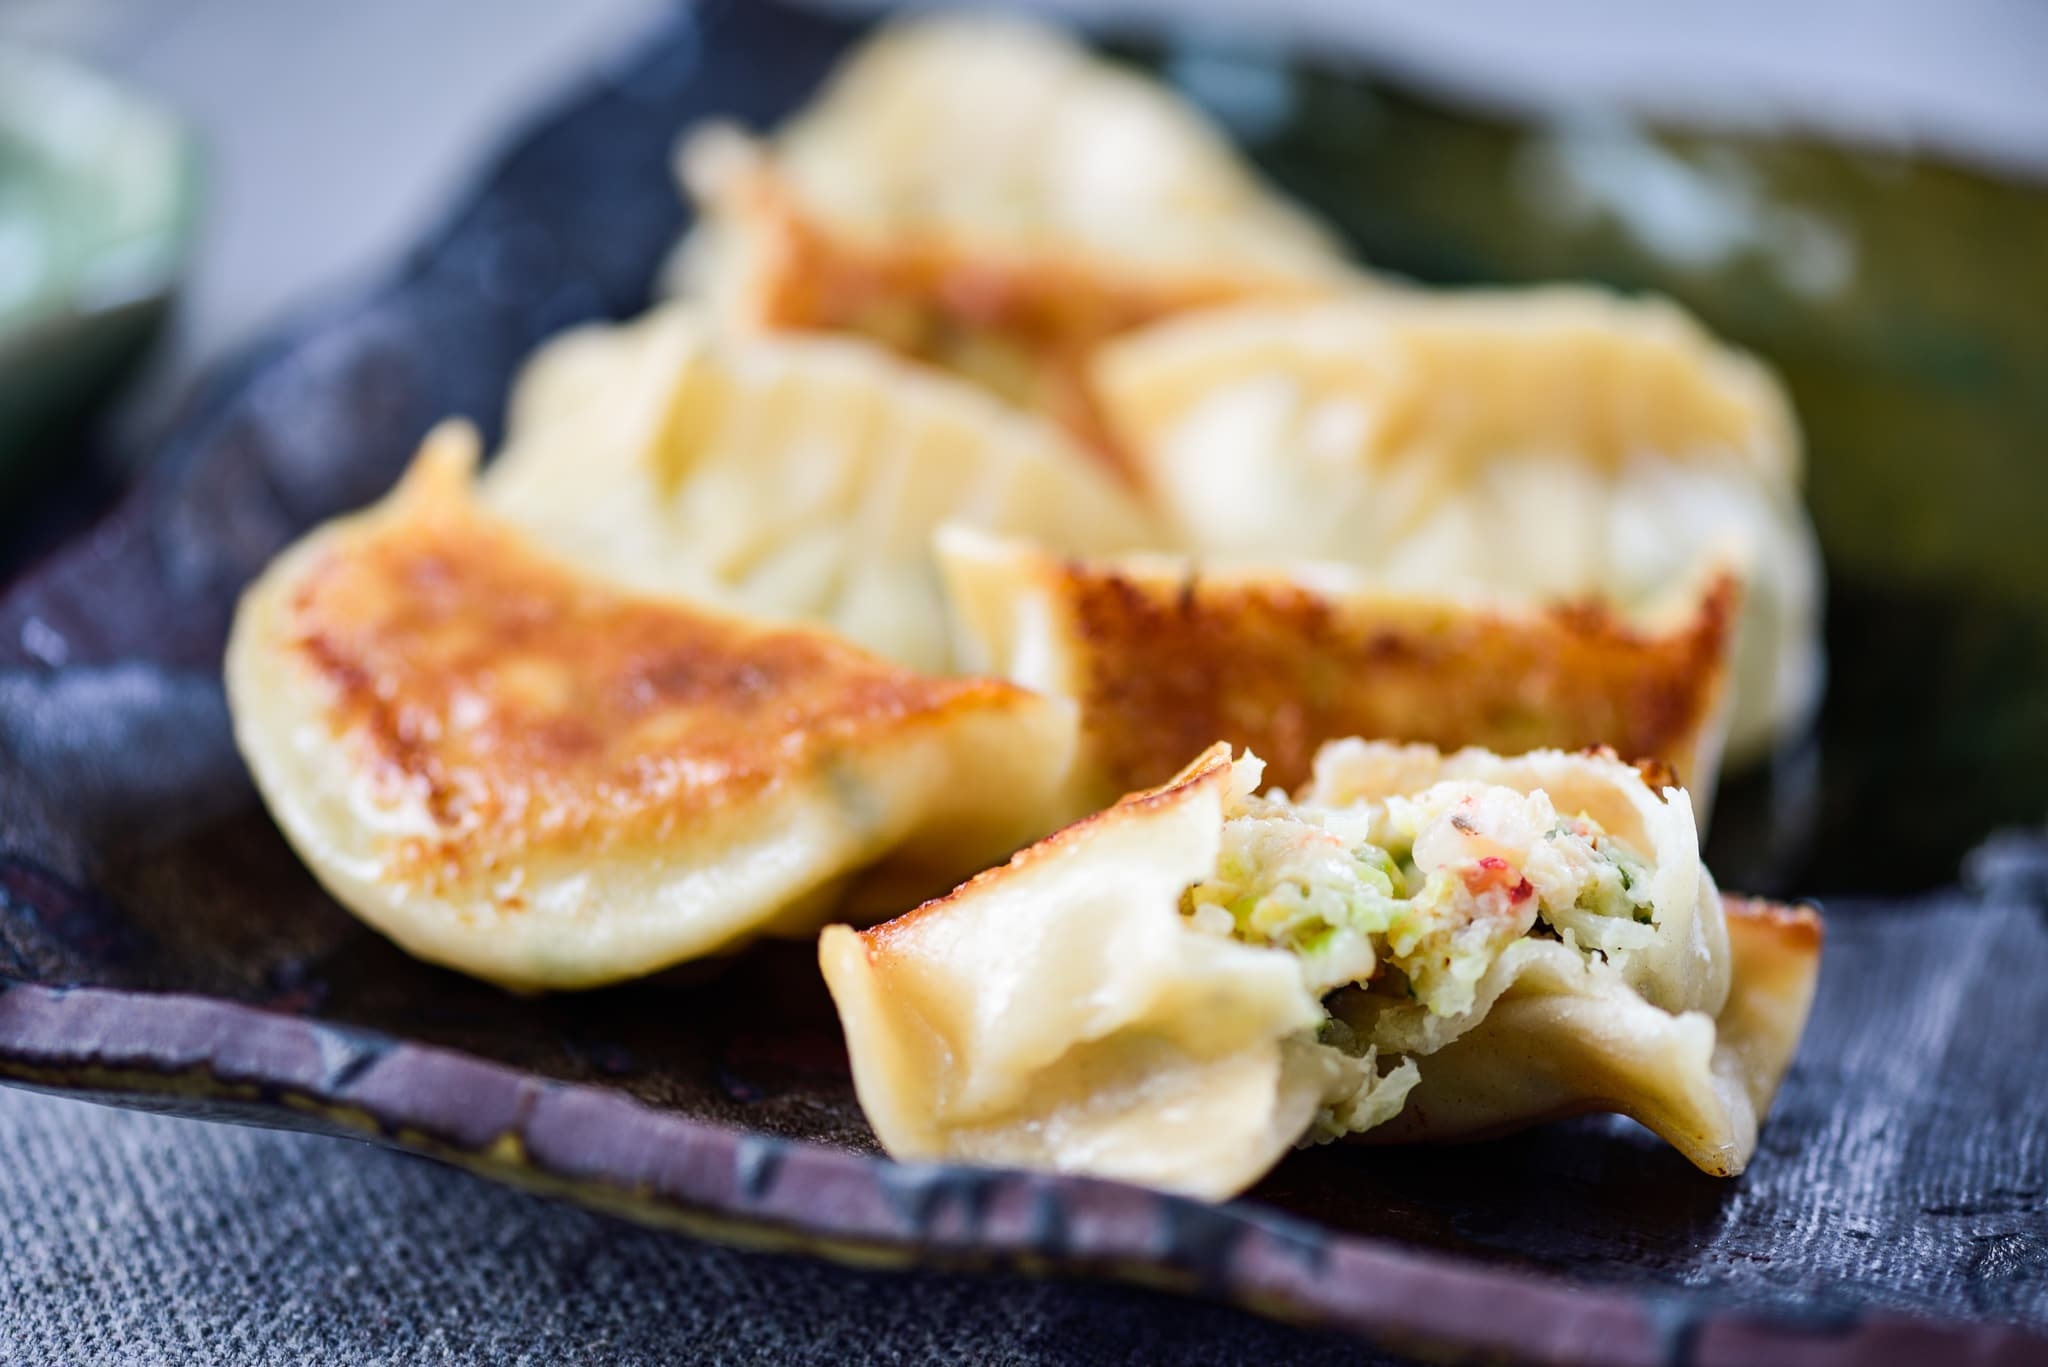 6 Pan-fried shrimp dumplings with crispy browned bottom